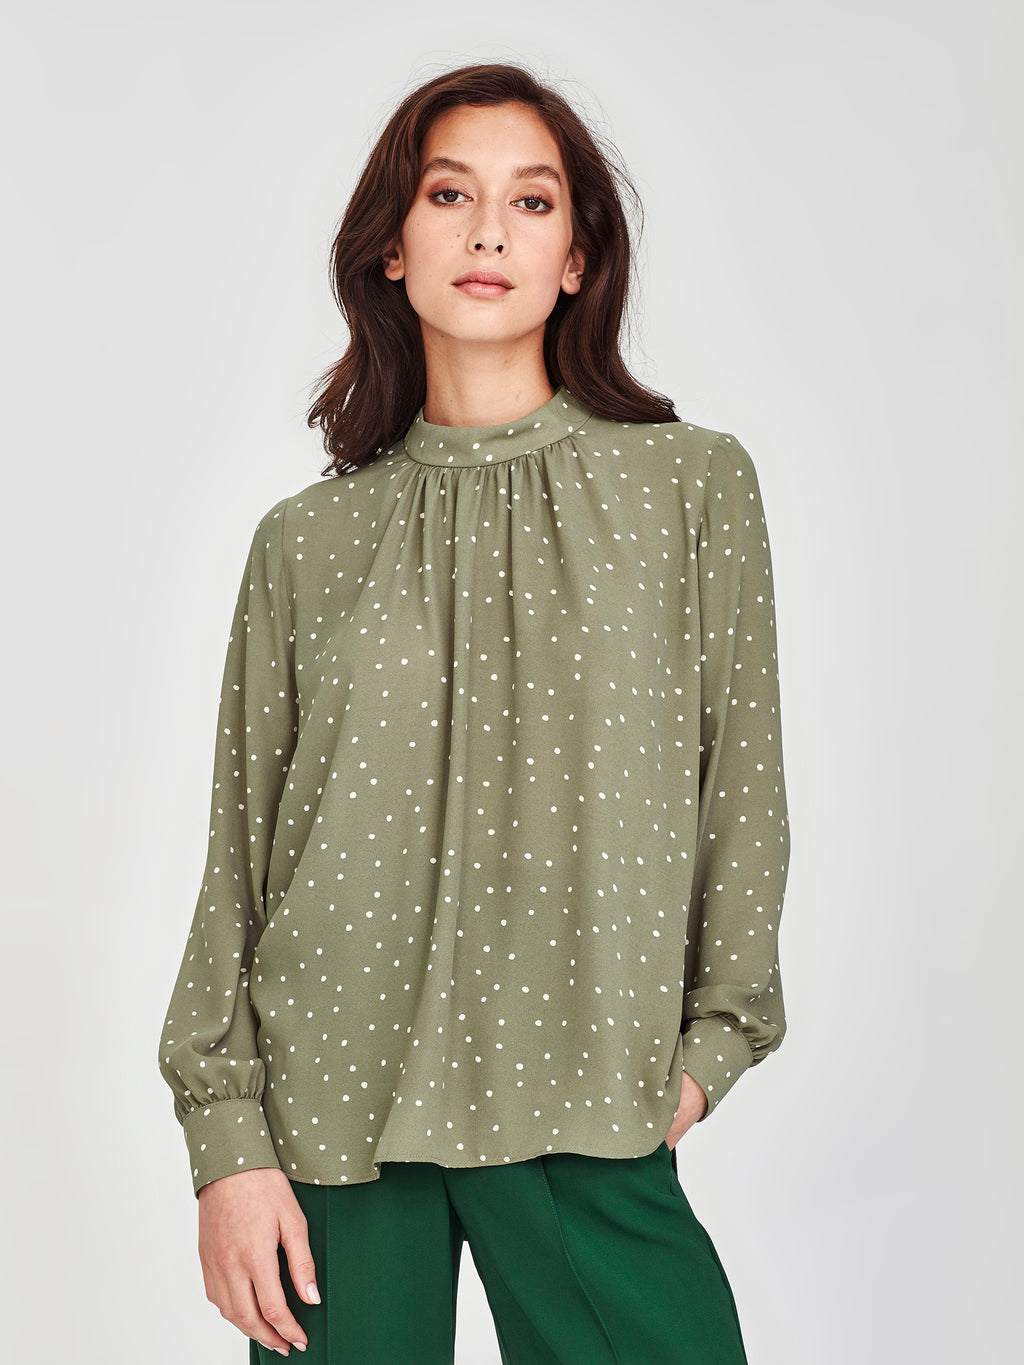 Alice Blouse (Spotty Crepe) Sea Green